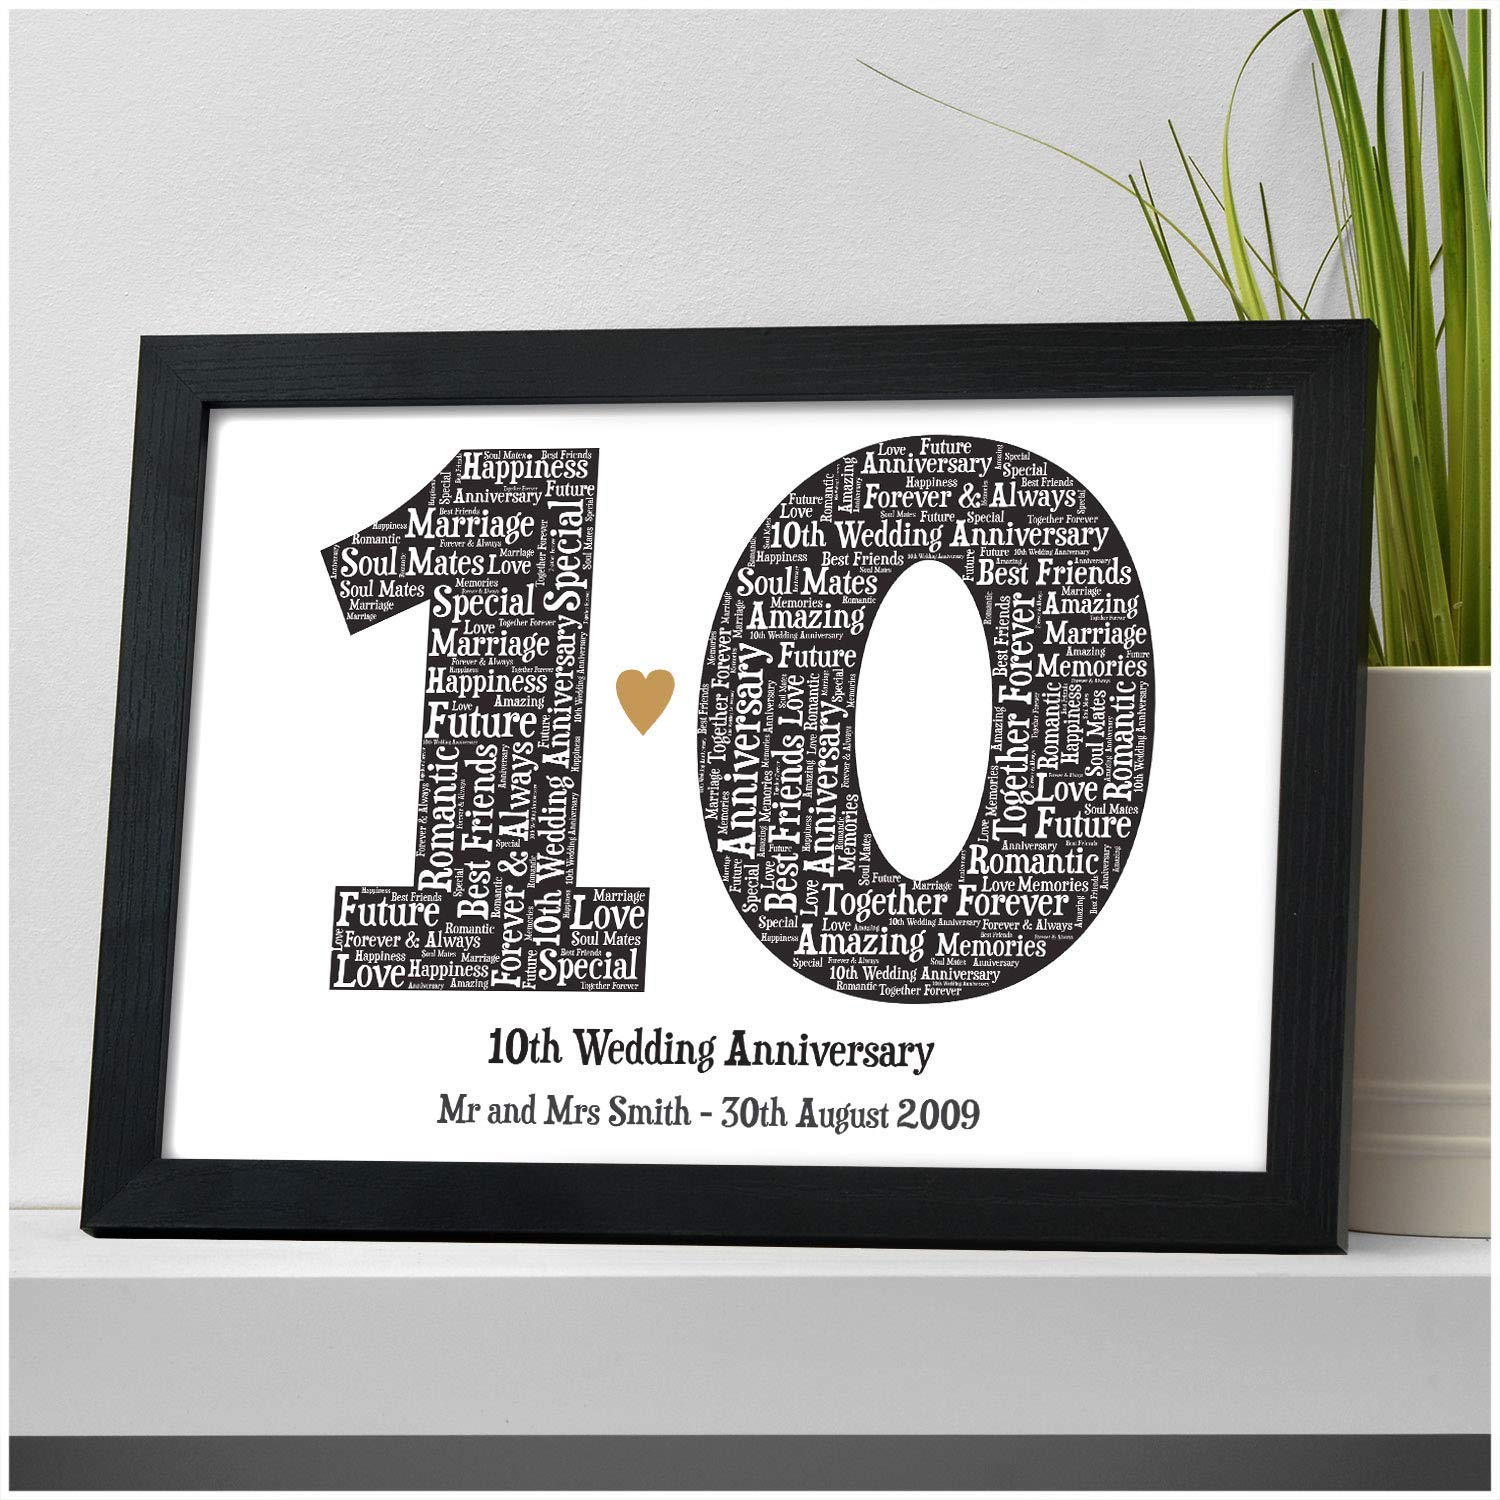 Personalised 10th Wedding Anniversary Gifts For Him Her 10th Anniversary Print Presents 10 Years Married Gifts For Husband Wife Son Daughter Married Couple Surname Gifts For Couples Amazon Co Uk Handmade